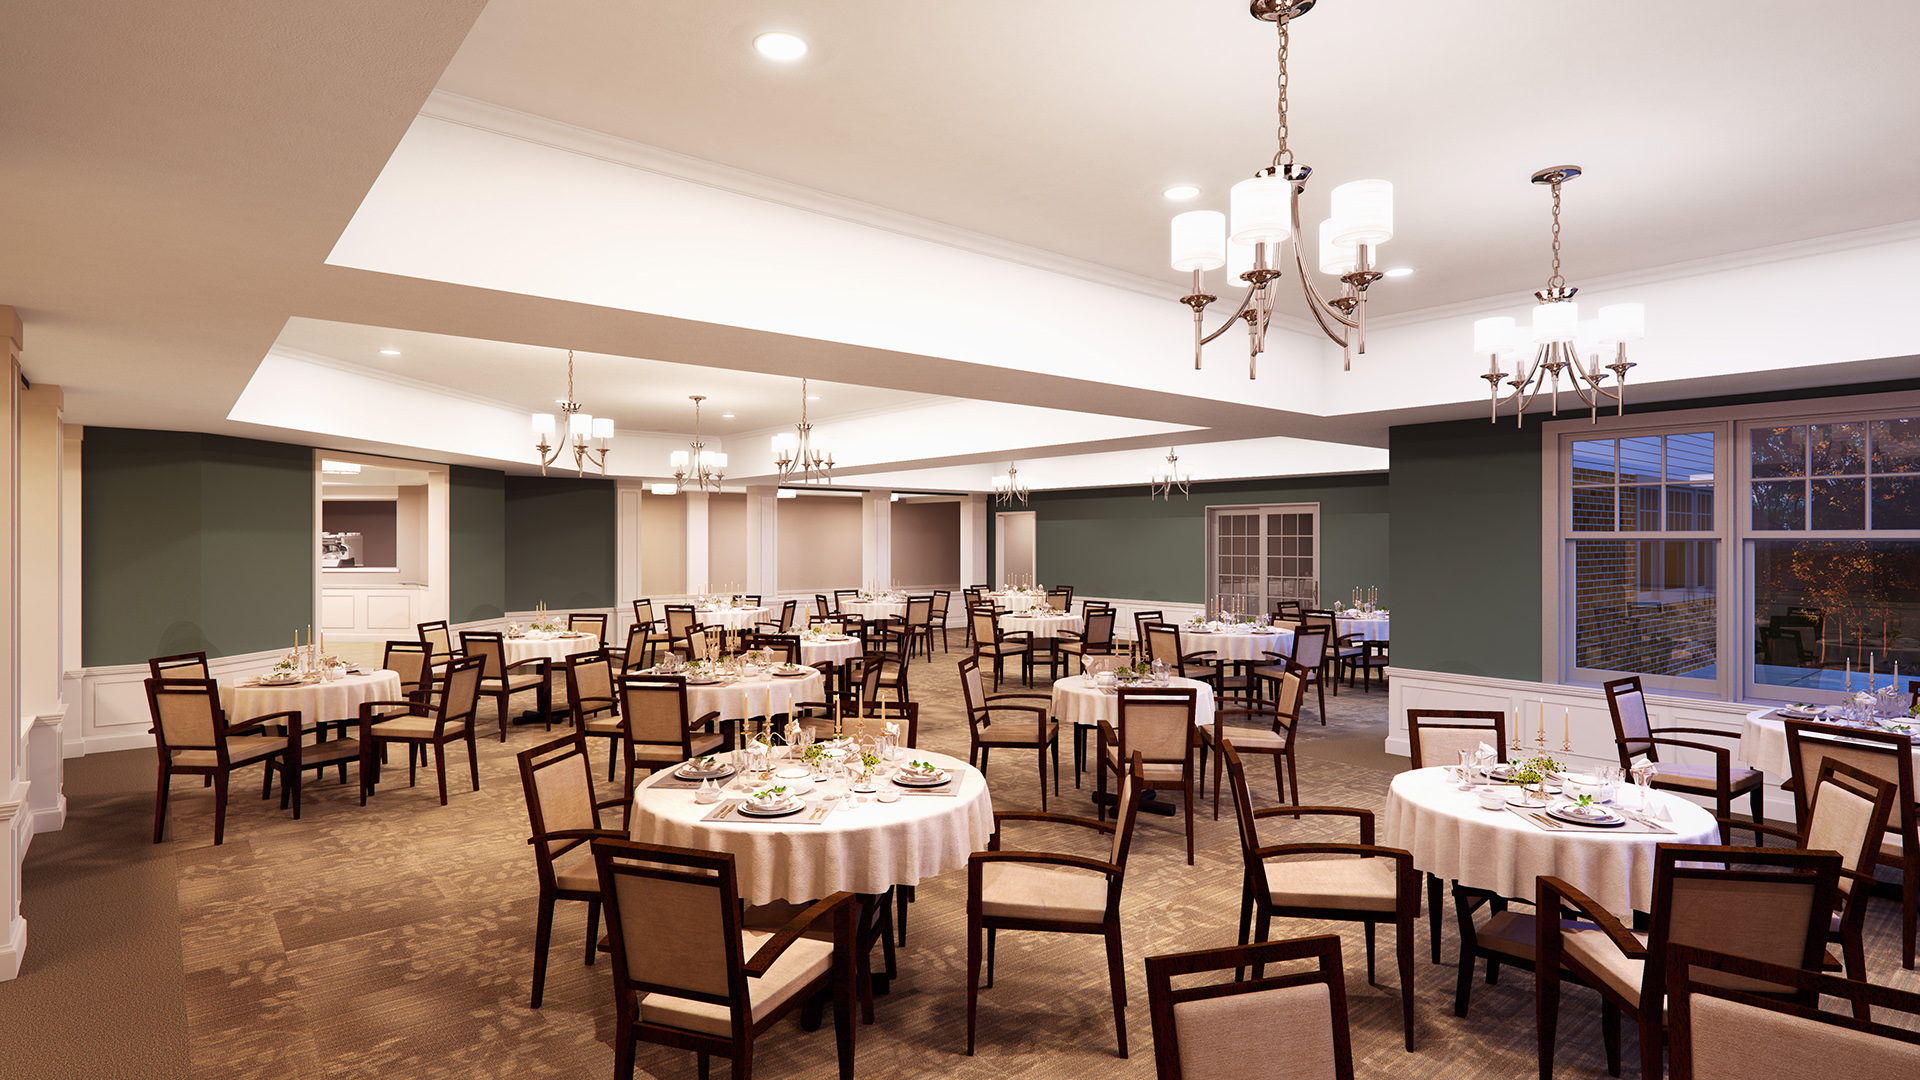 2reveal-seniorliving-dining.jpg